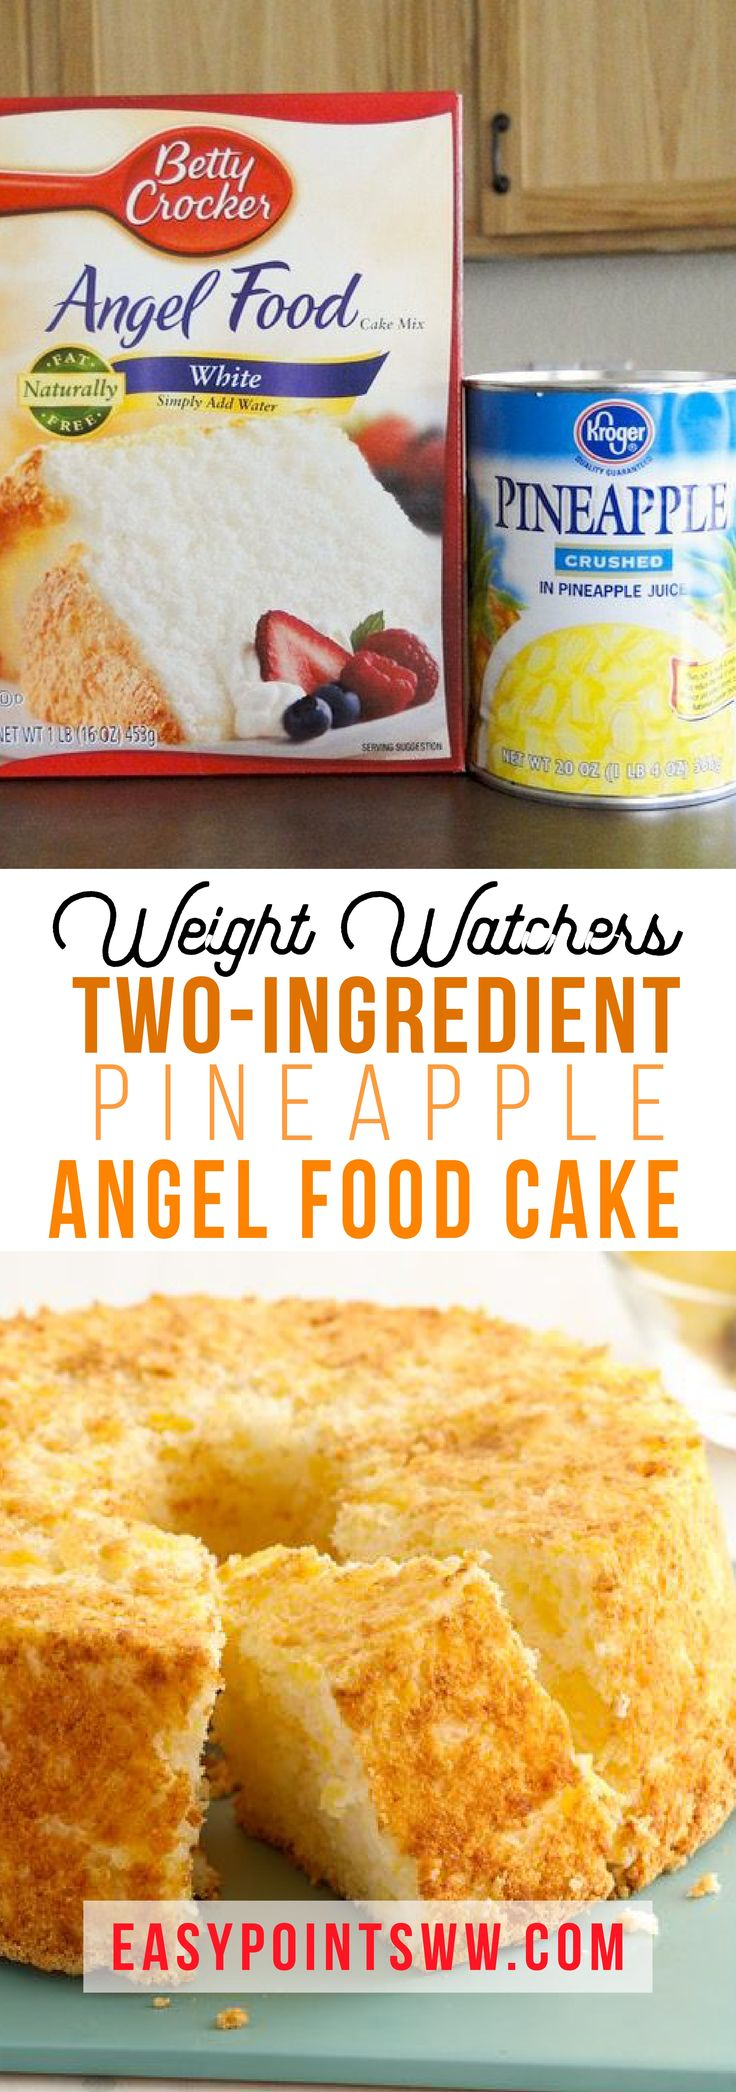 2-INGREDIENT WEIGHT WATCHERS PINEAPPLE ANGEL FOOD CAKE ♥